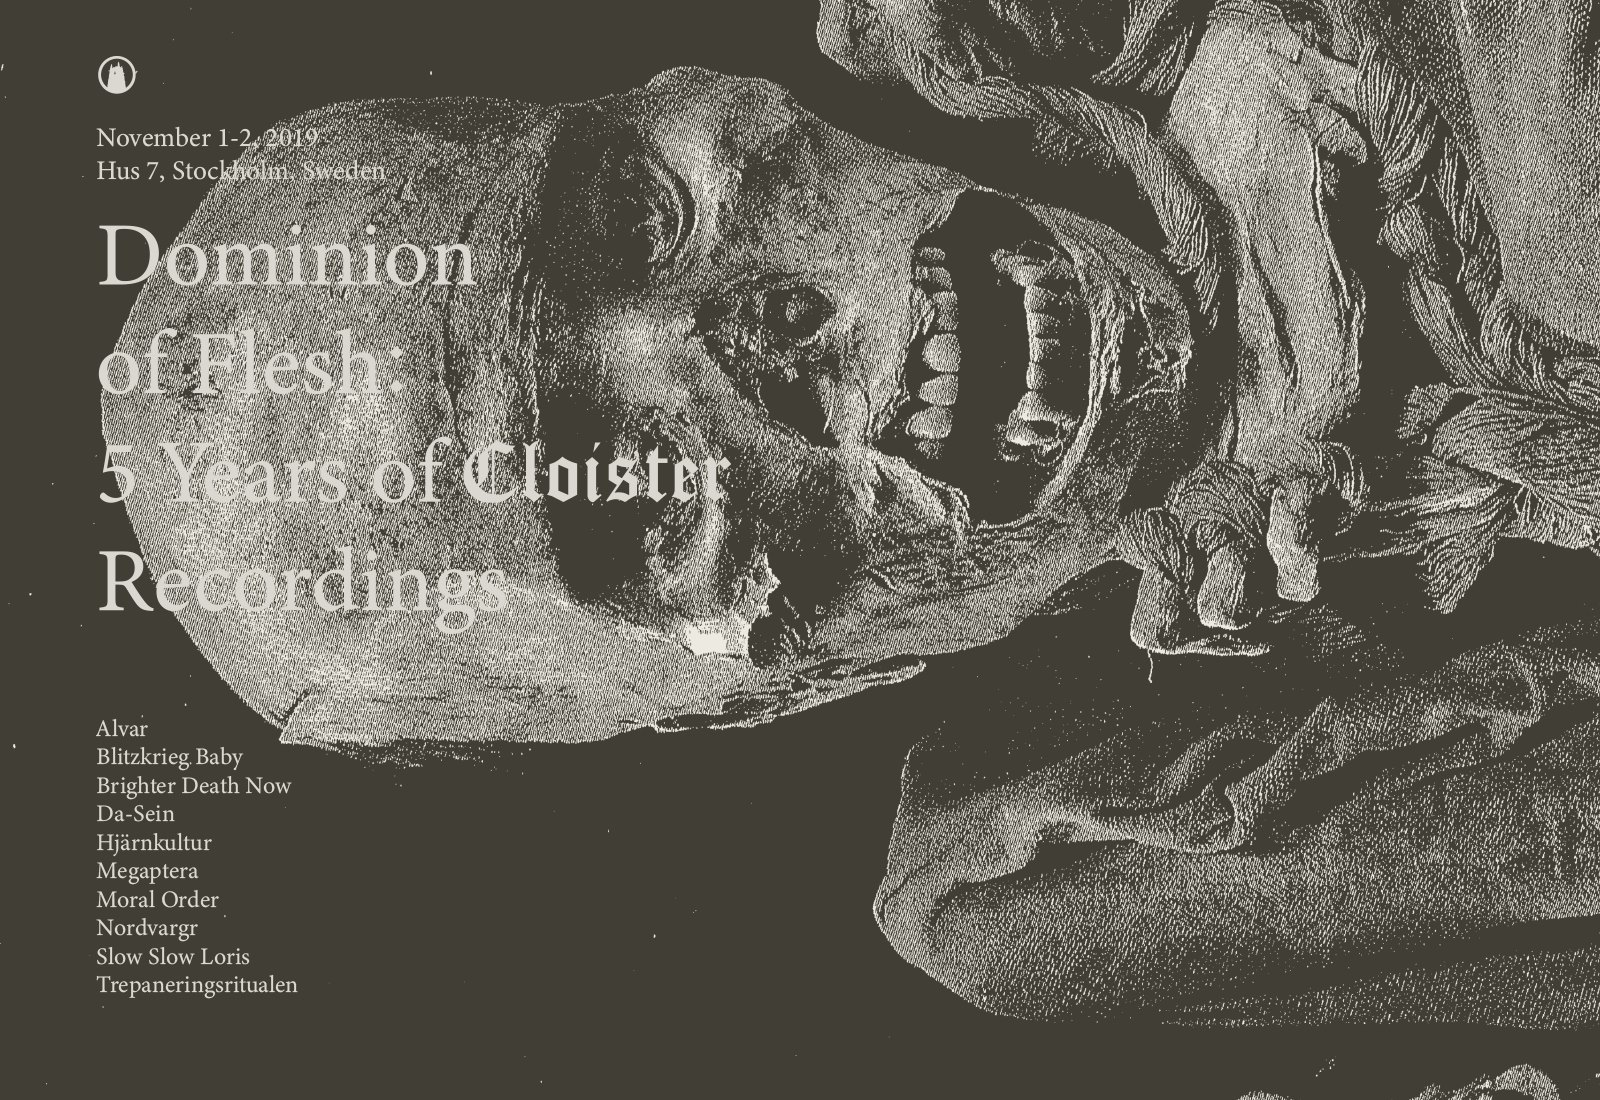 Nov 1-2, 2019 - Dominion Of Flesh:5Years Of Cloister RecordingsEvent LinkHus7, Styckmästargatan 10, 121 62, Stockholm, Sweden